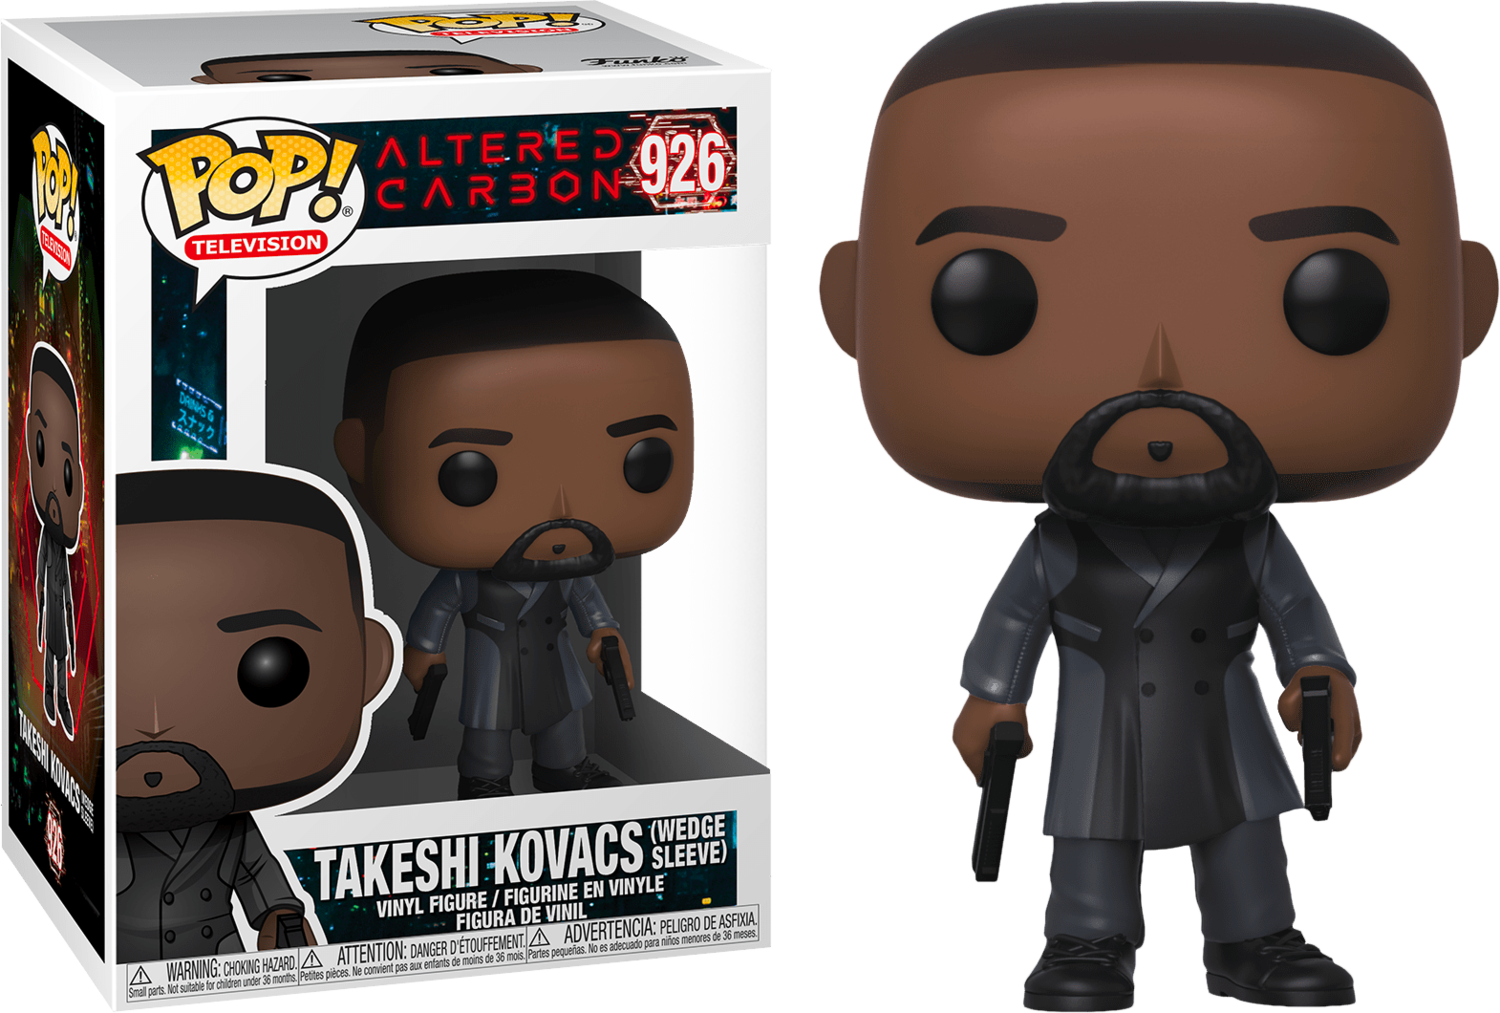 Funko Altered Carbon - Takeshi Kovacs Wedge Sleeve Pop! Vinyl Figure